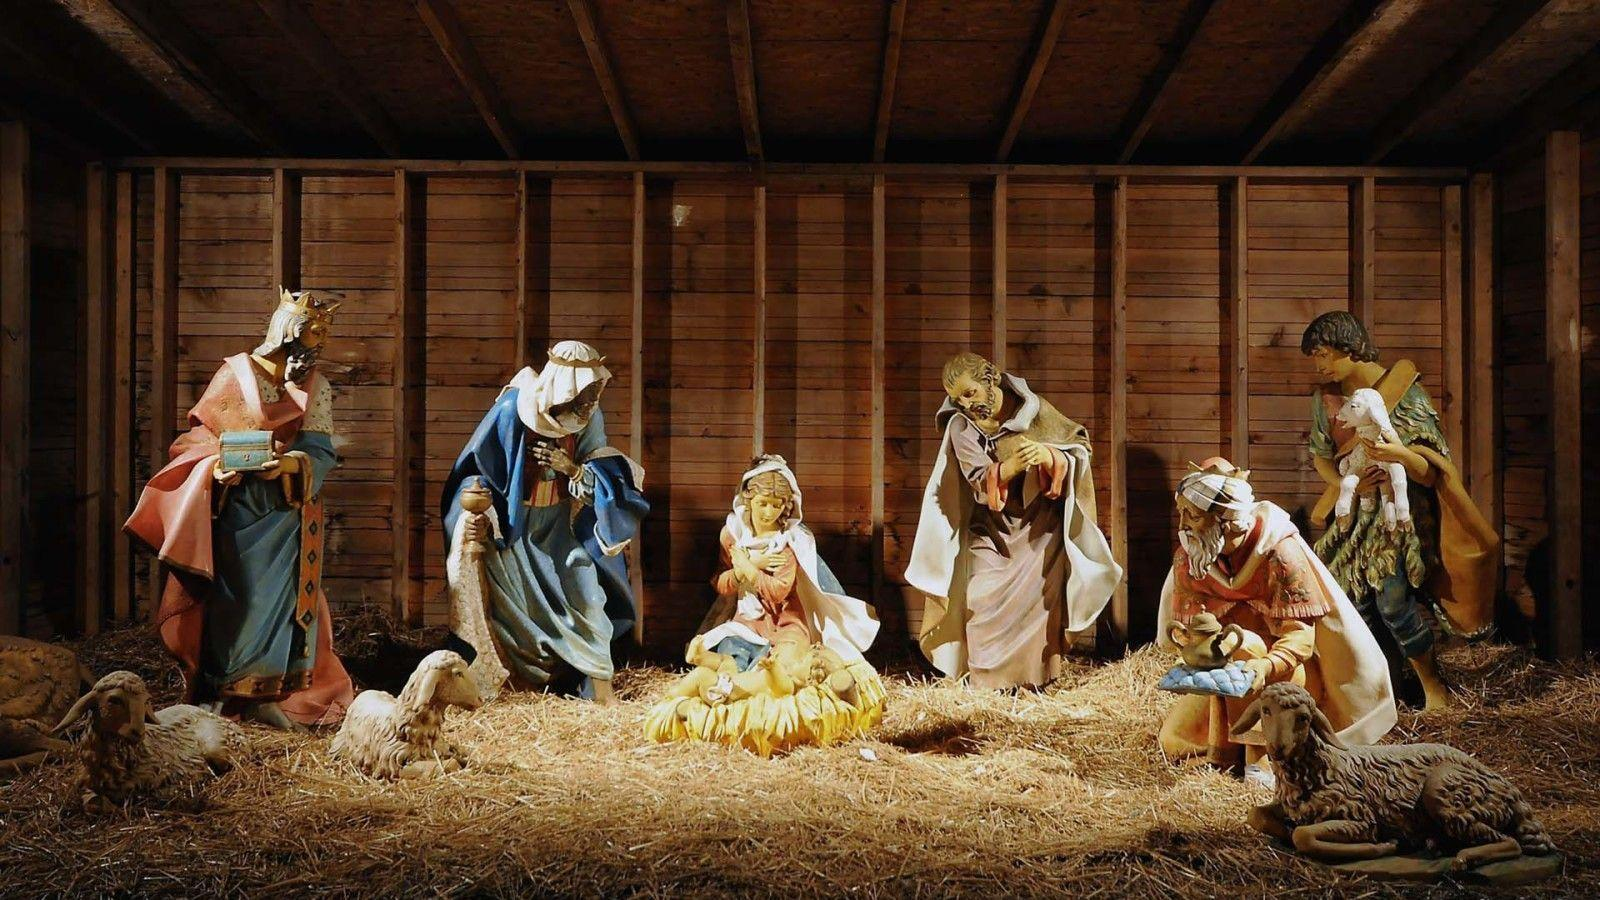 Christmas Nativity Scene Wallpapers for Desktop